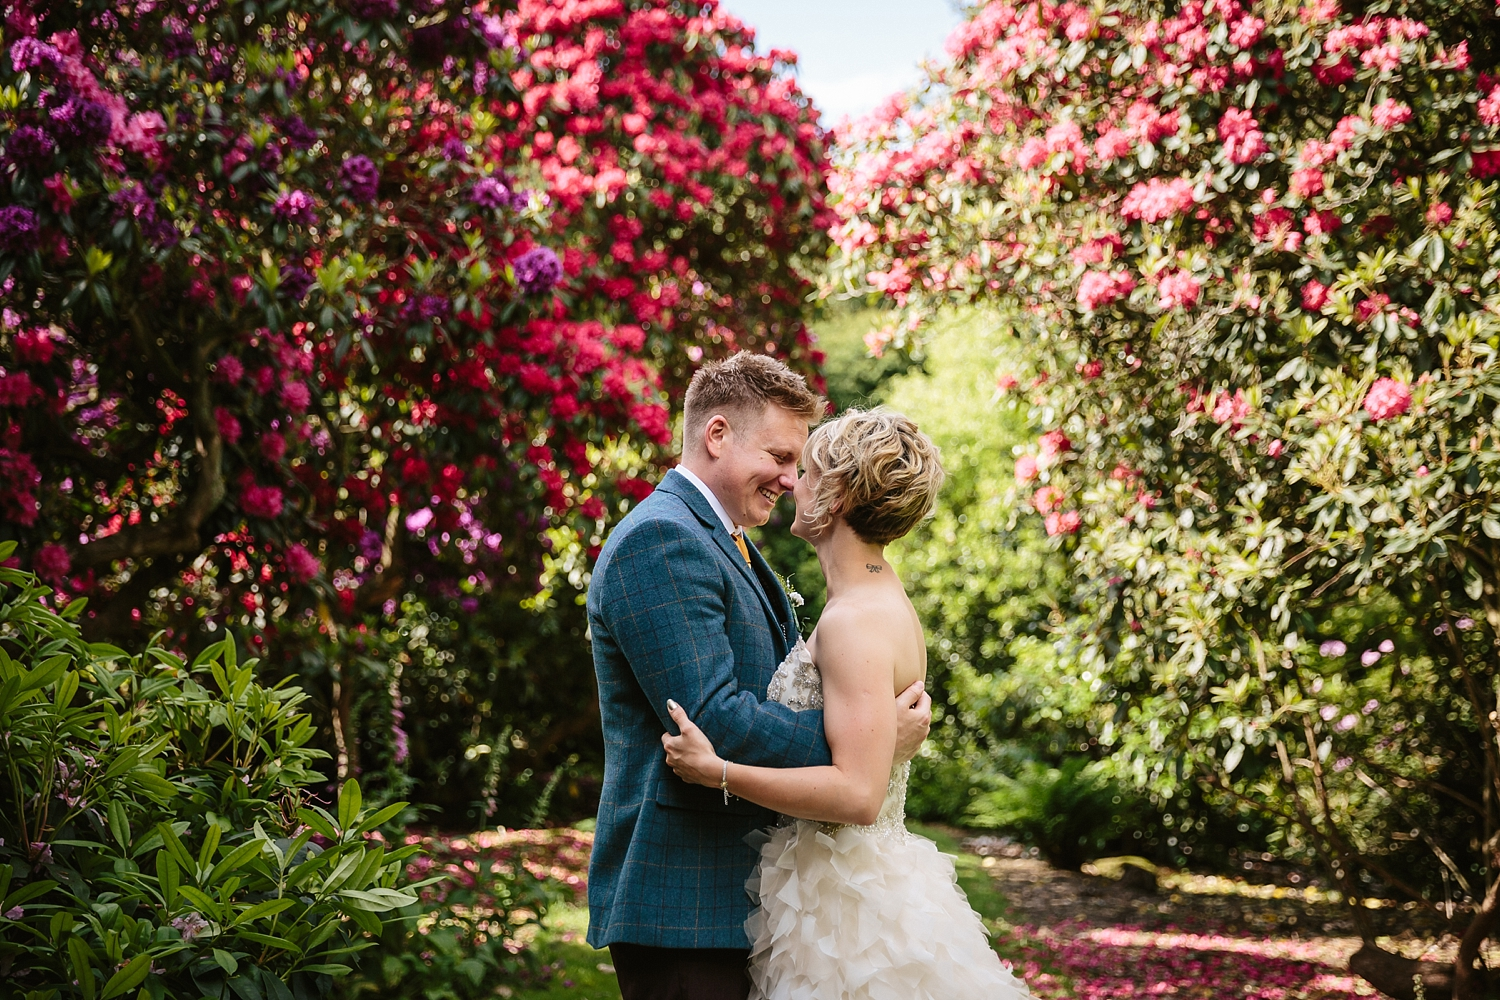 Natlie-Matthew-yorkshire-natural-relaxed-fun-documentary-reportage-candid-wedding-photography-photographer-Derby-Nottingham-Derbyshire-Nottinghamshire-Leicestershire-Lincolnshire-East-Midlands-59.jpg